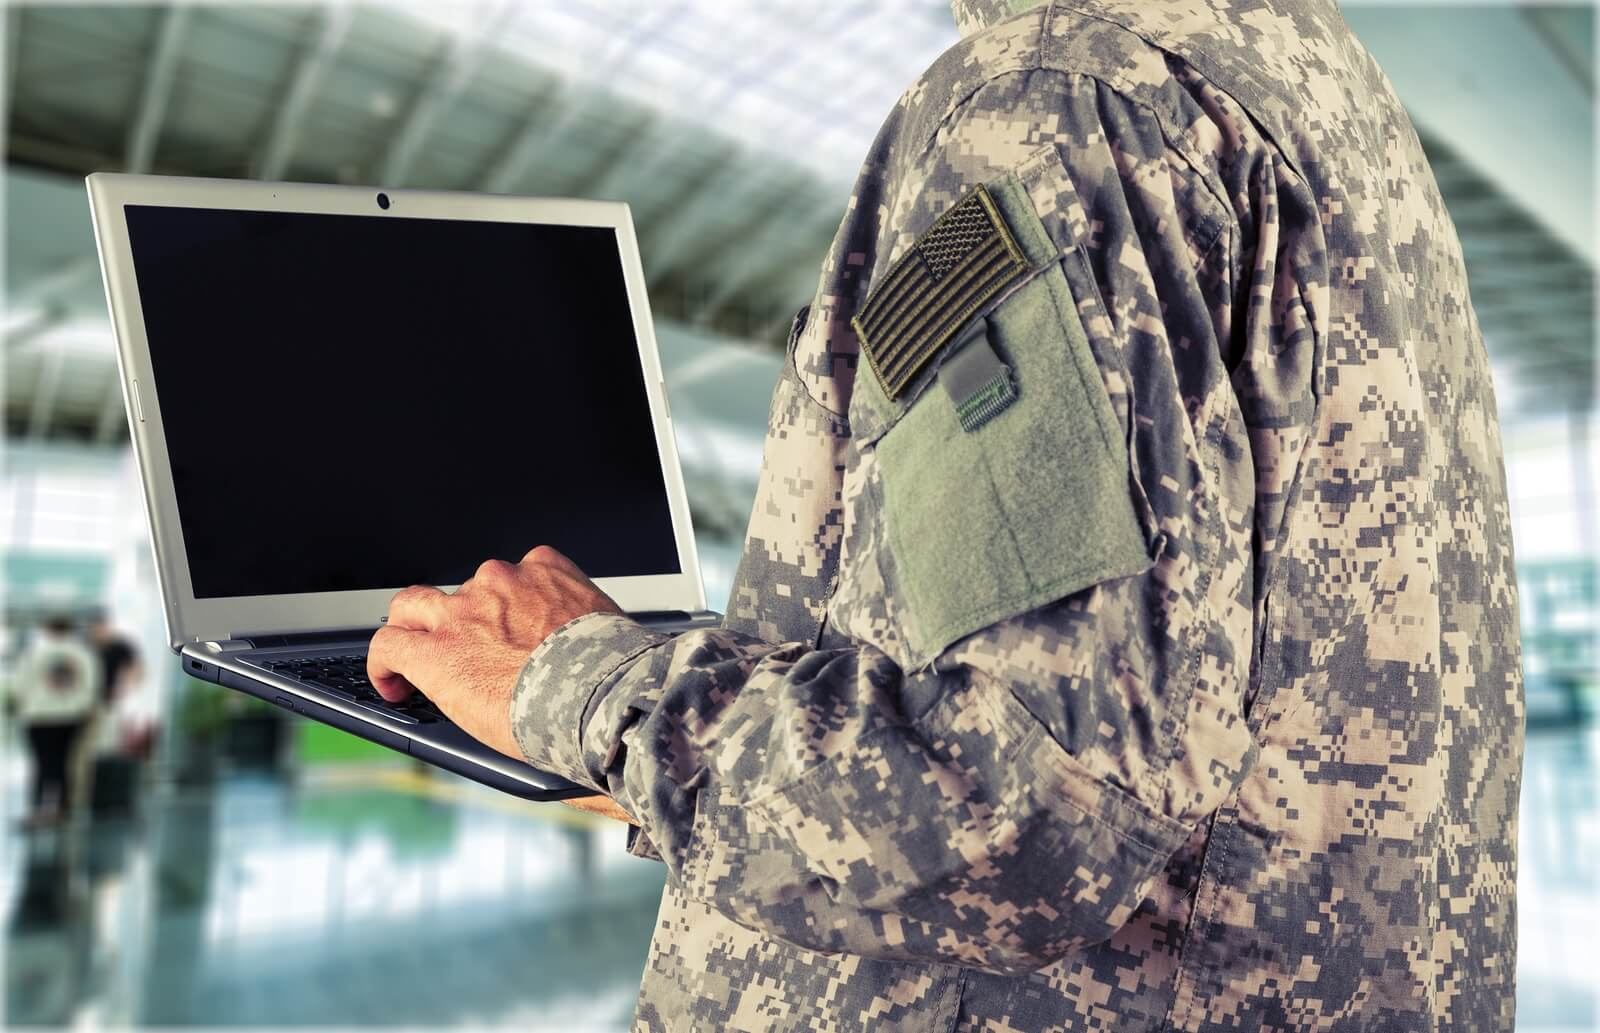 soldier using encrypted computer or VDI